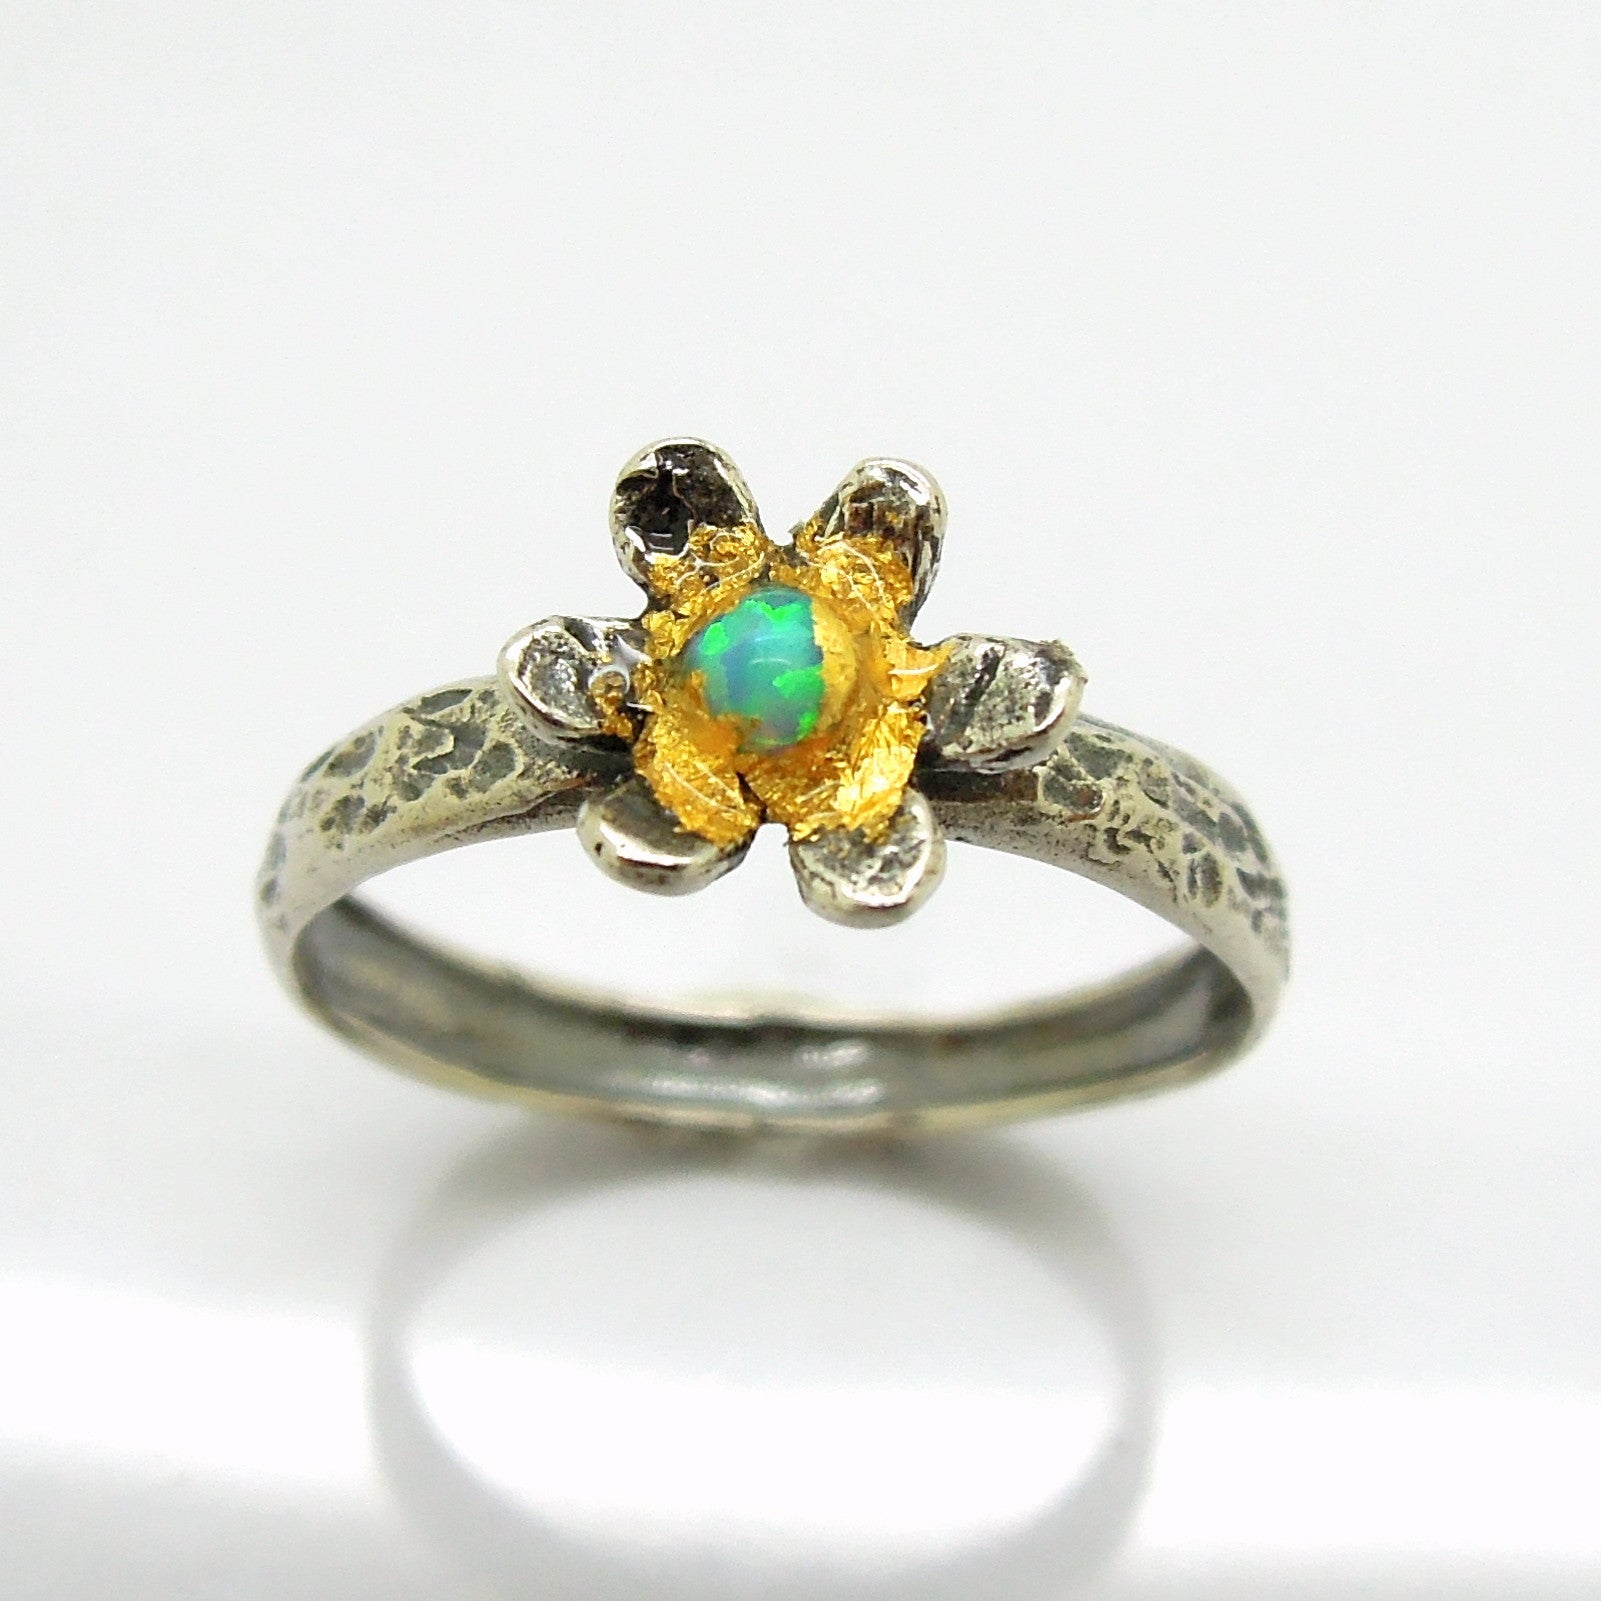 8c391bea867d2 Flower ring with opal and 24K Yellow gold, Hammered sterling silver band